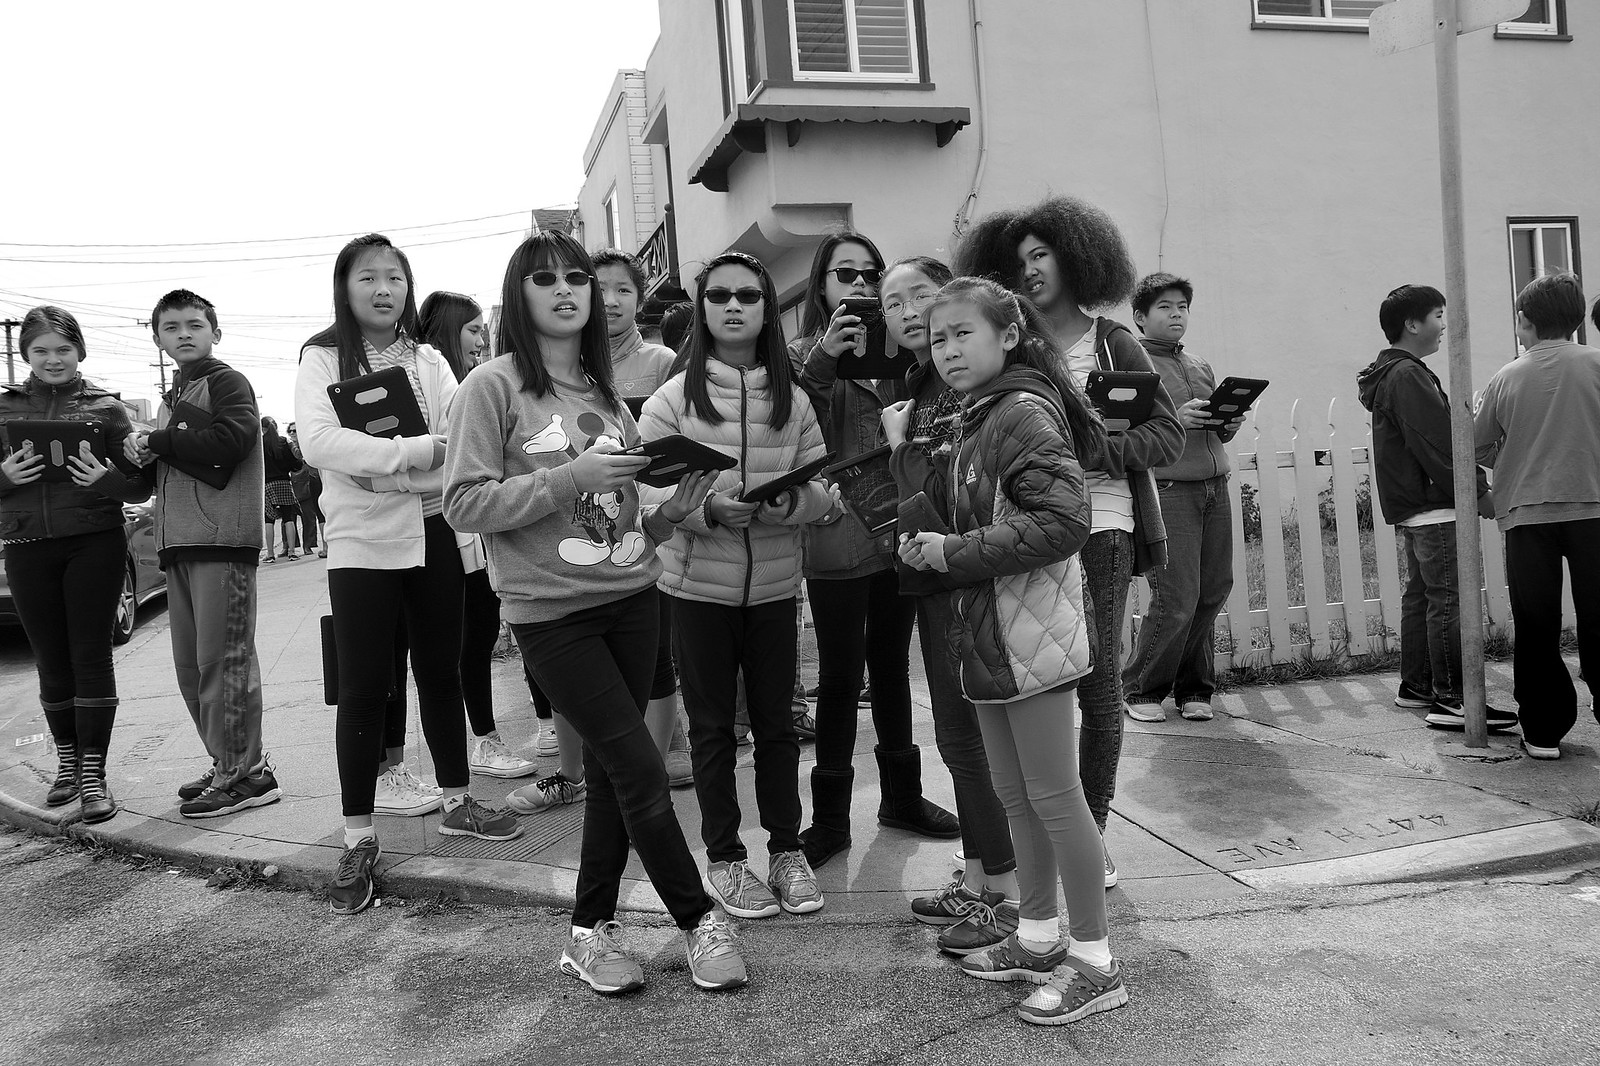 Sixth Graders from Giannini Middle School, Outer Sunset District - San Francisco, CA | by Rex Mandel